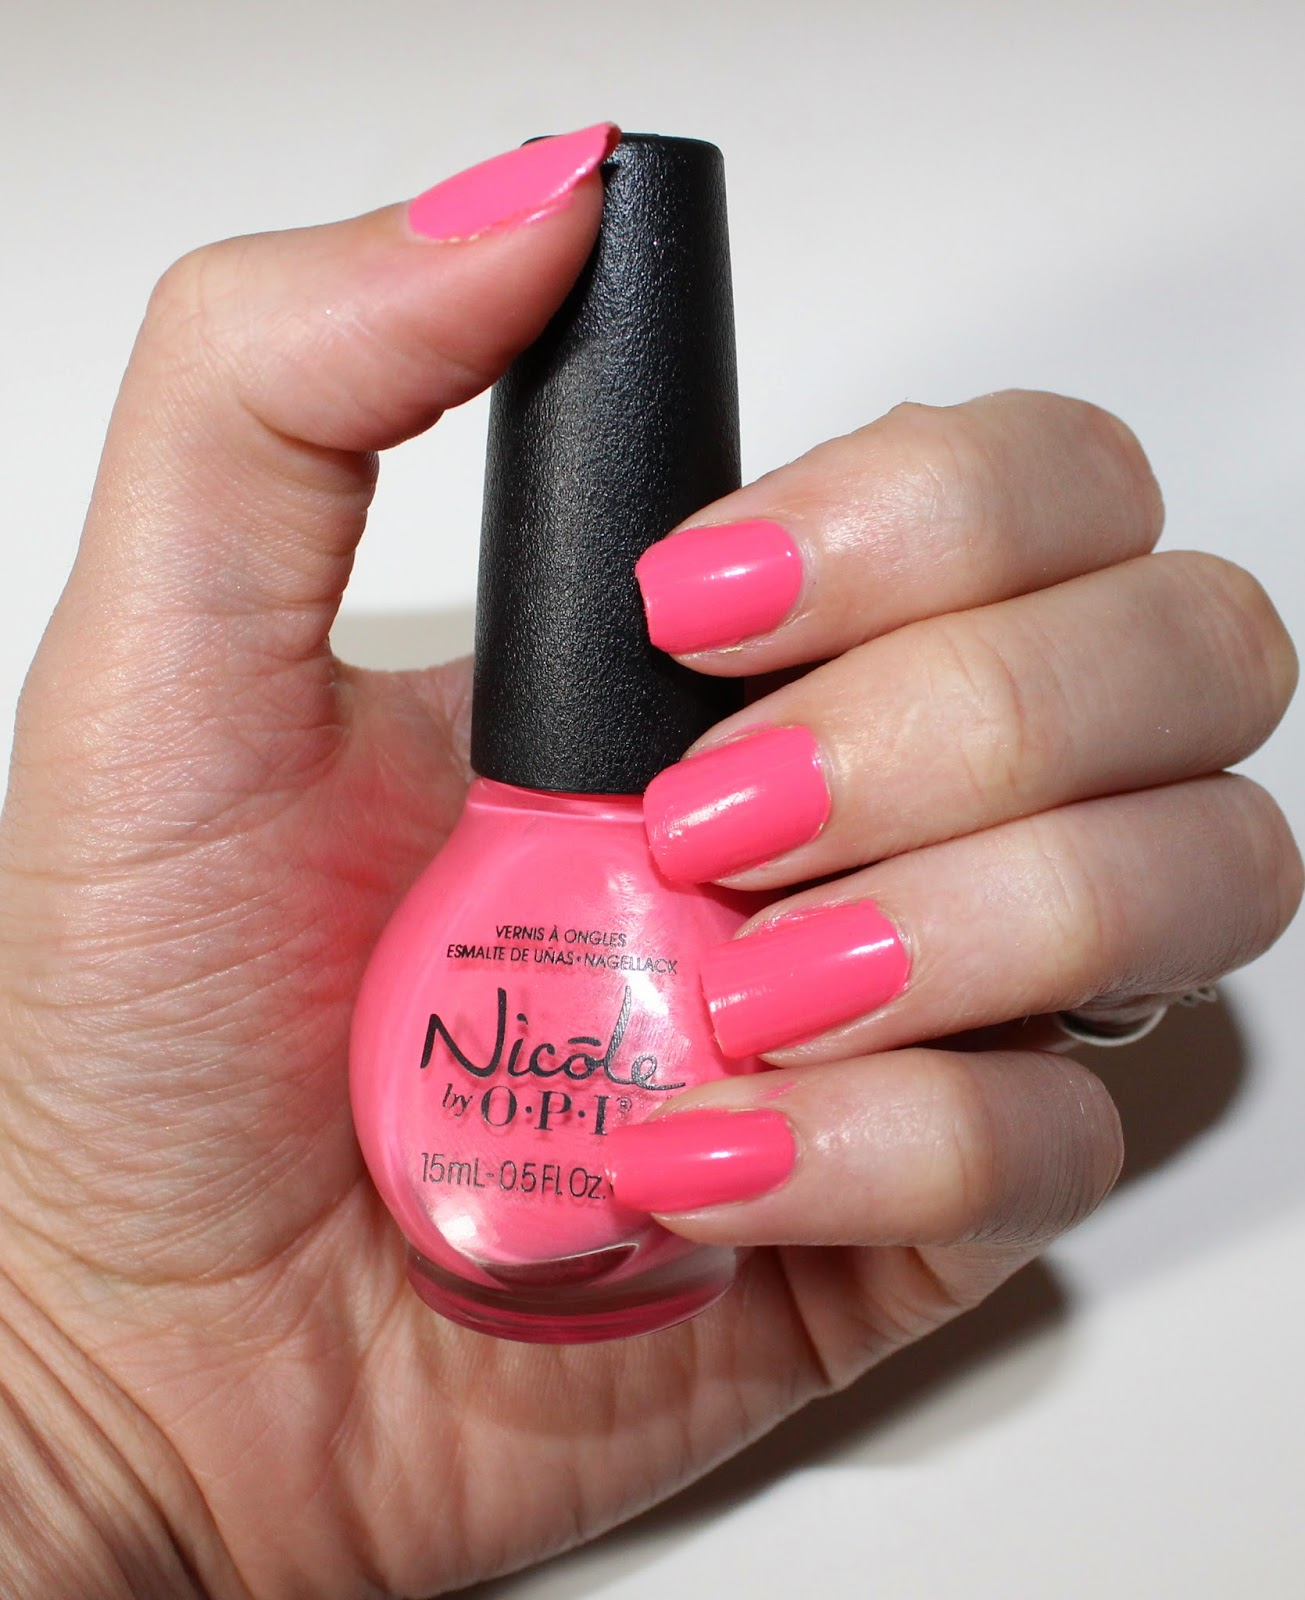 Nicole by OPI  LeaPink for Joy swatch